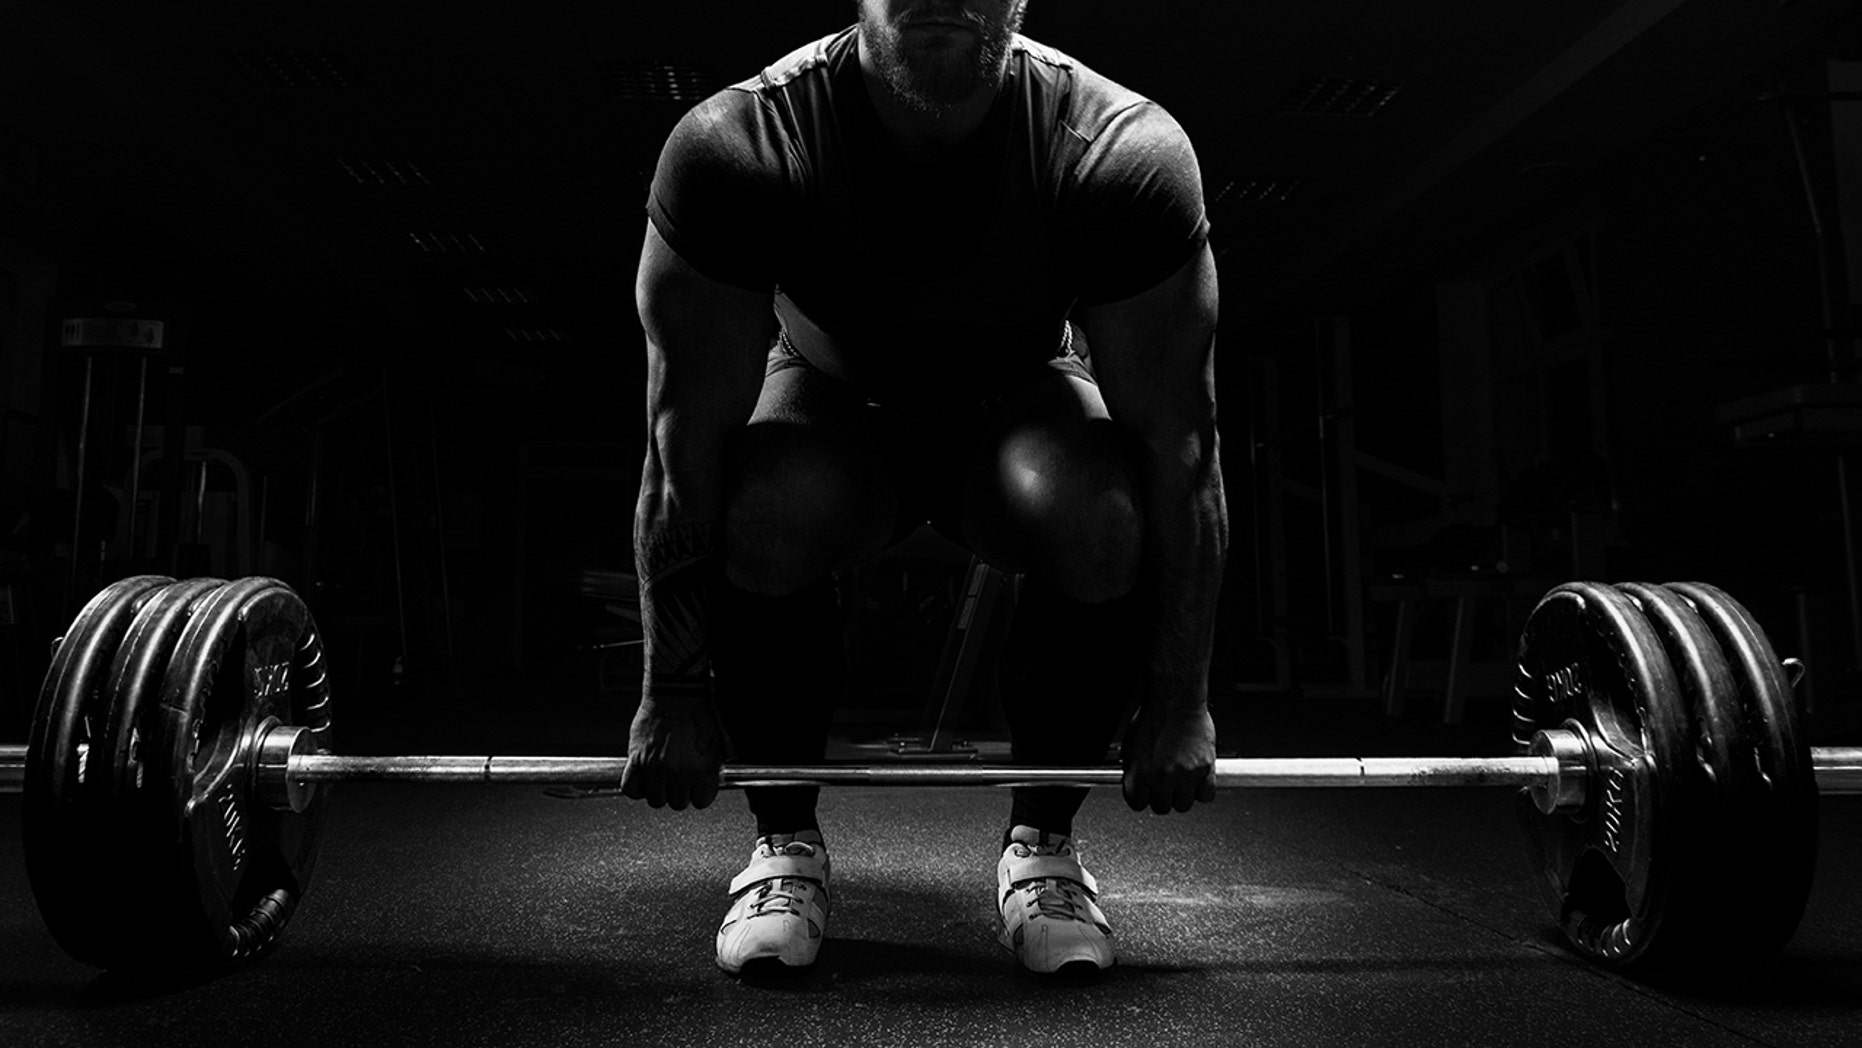 Transgender women will not be allowed to compete in USA Powerlifting competitions, the organization announced recently. (istock)